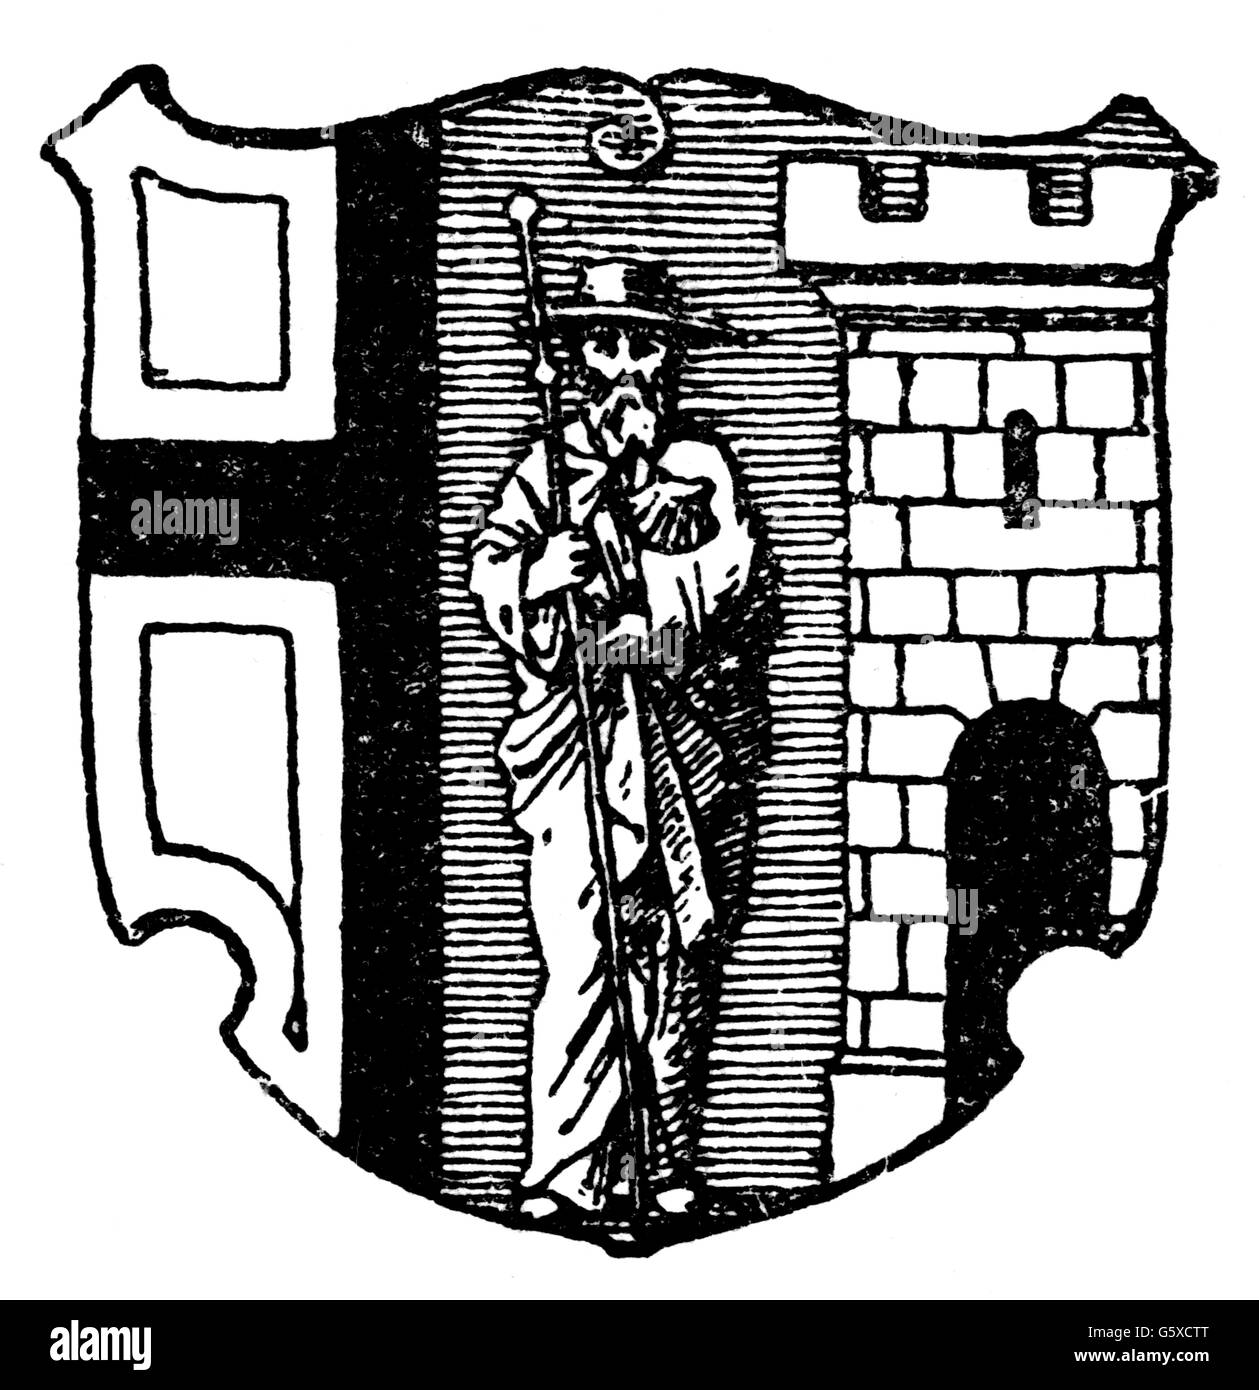 heraldry, coat of arms, Poland, city arms, Olsztyn, wood engraving, 1892, Additional-Rights-Clearences-NA - Stock Image